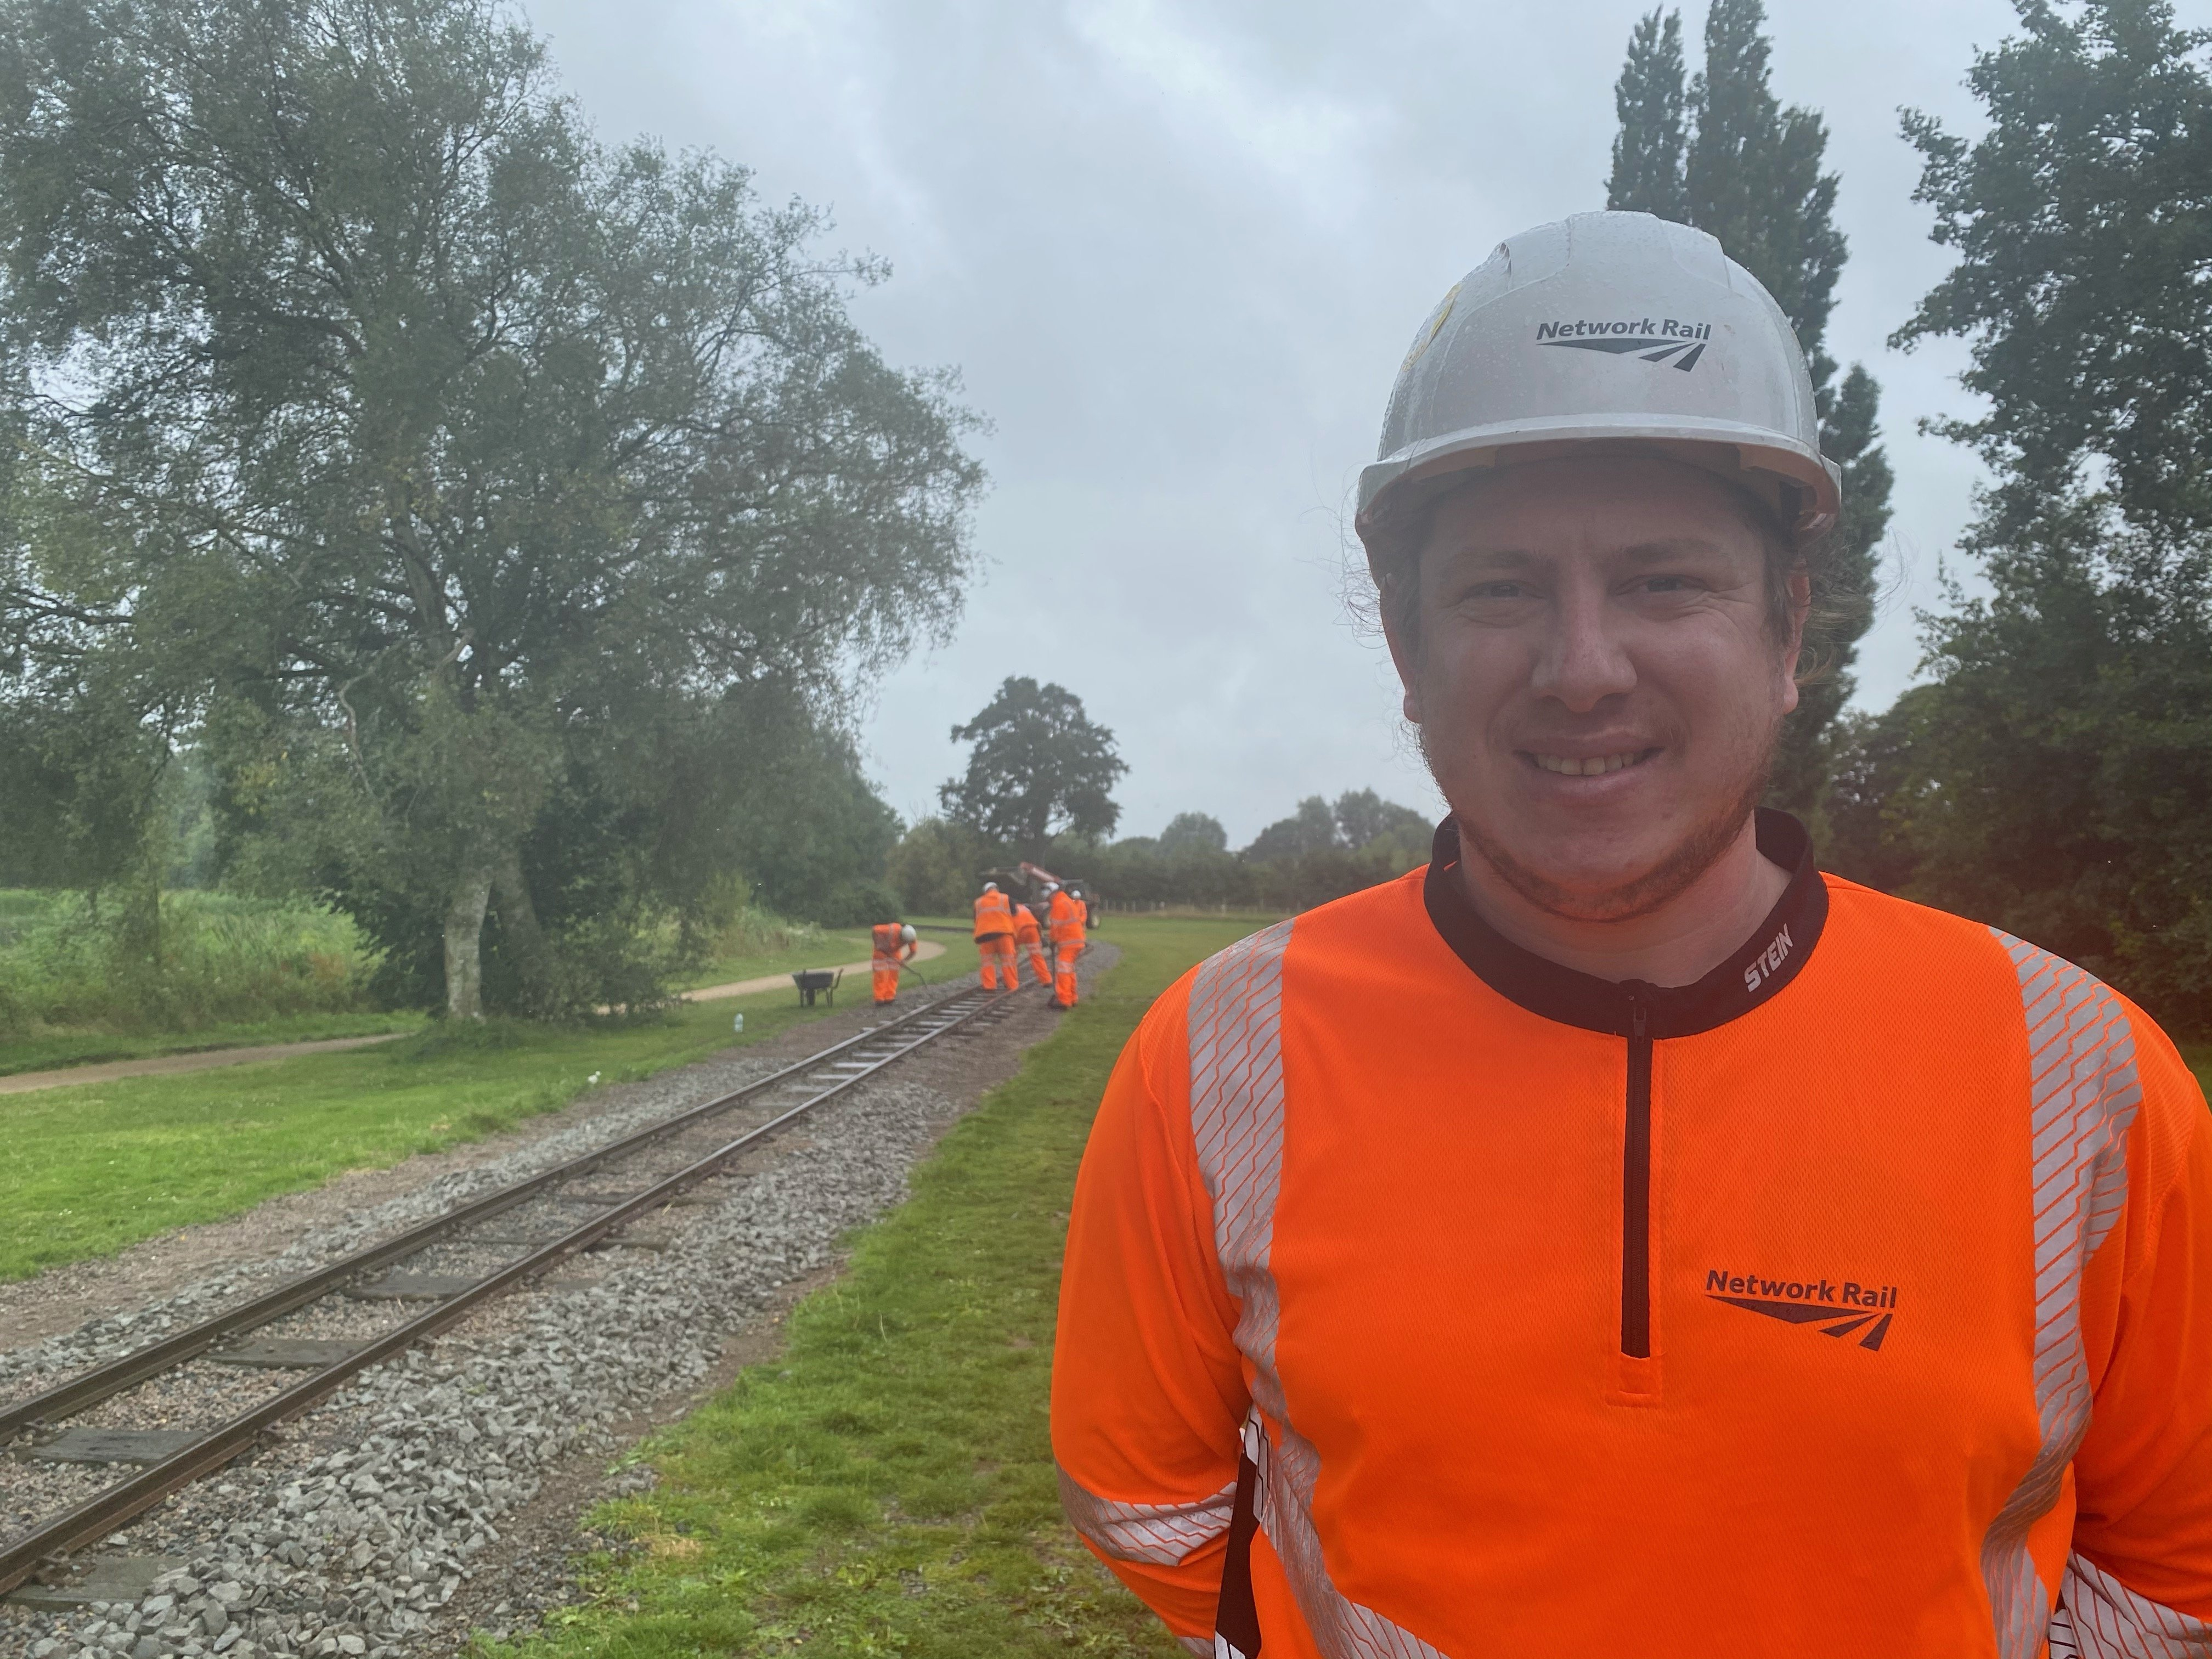 NETWORK RAIL VOLUNTEERS STEP IN TO HELP GET WICKSTEED PARK TRAIN BACK ON TRACK